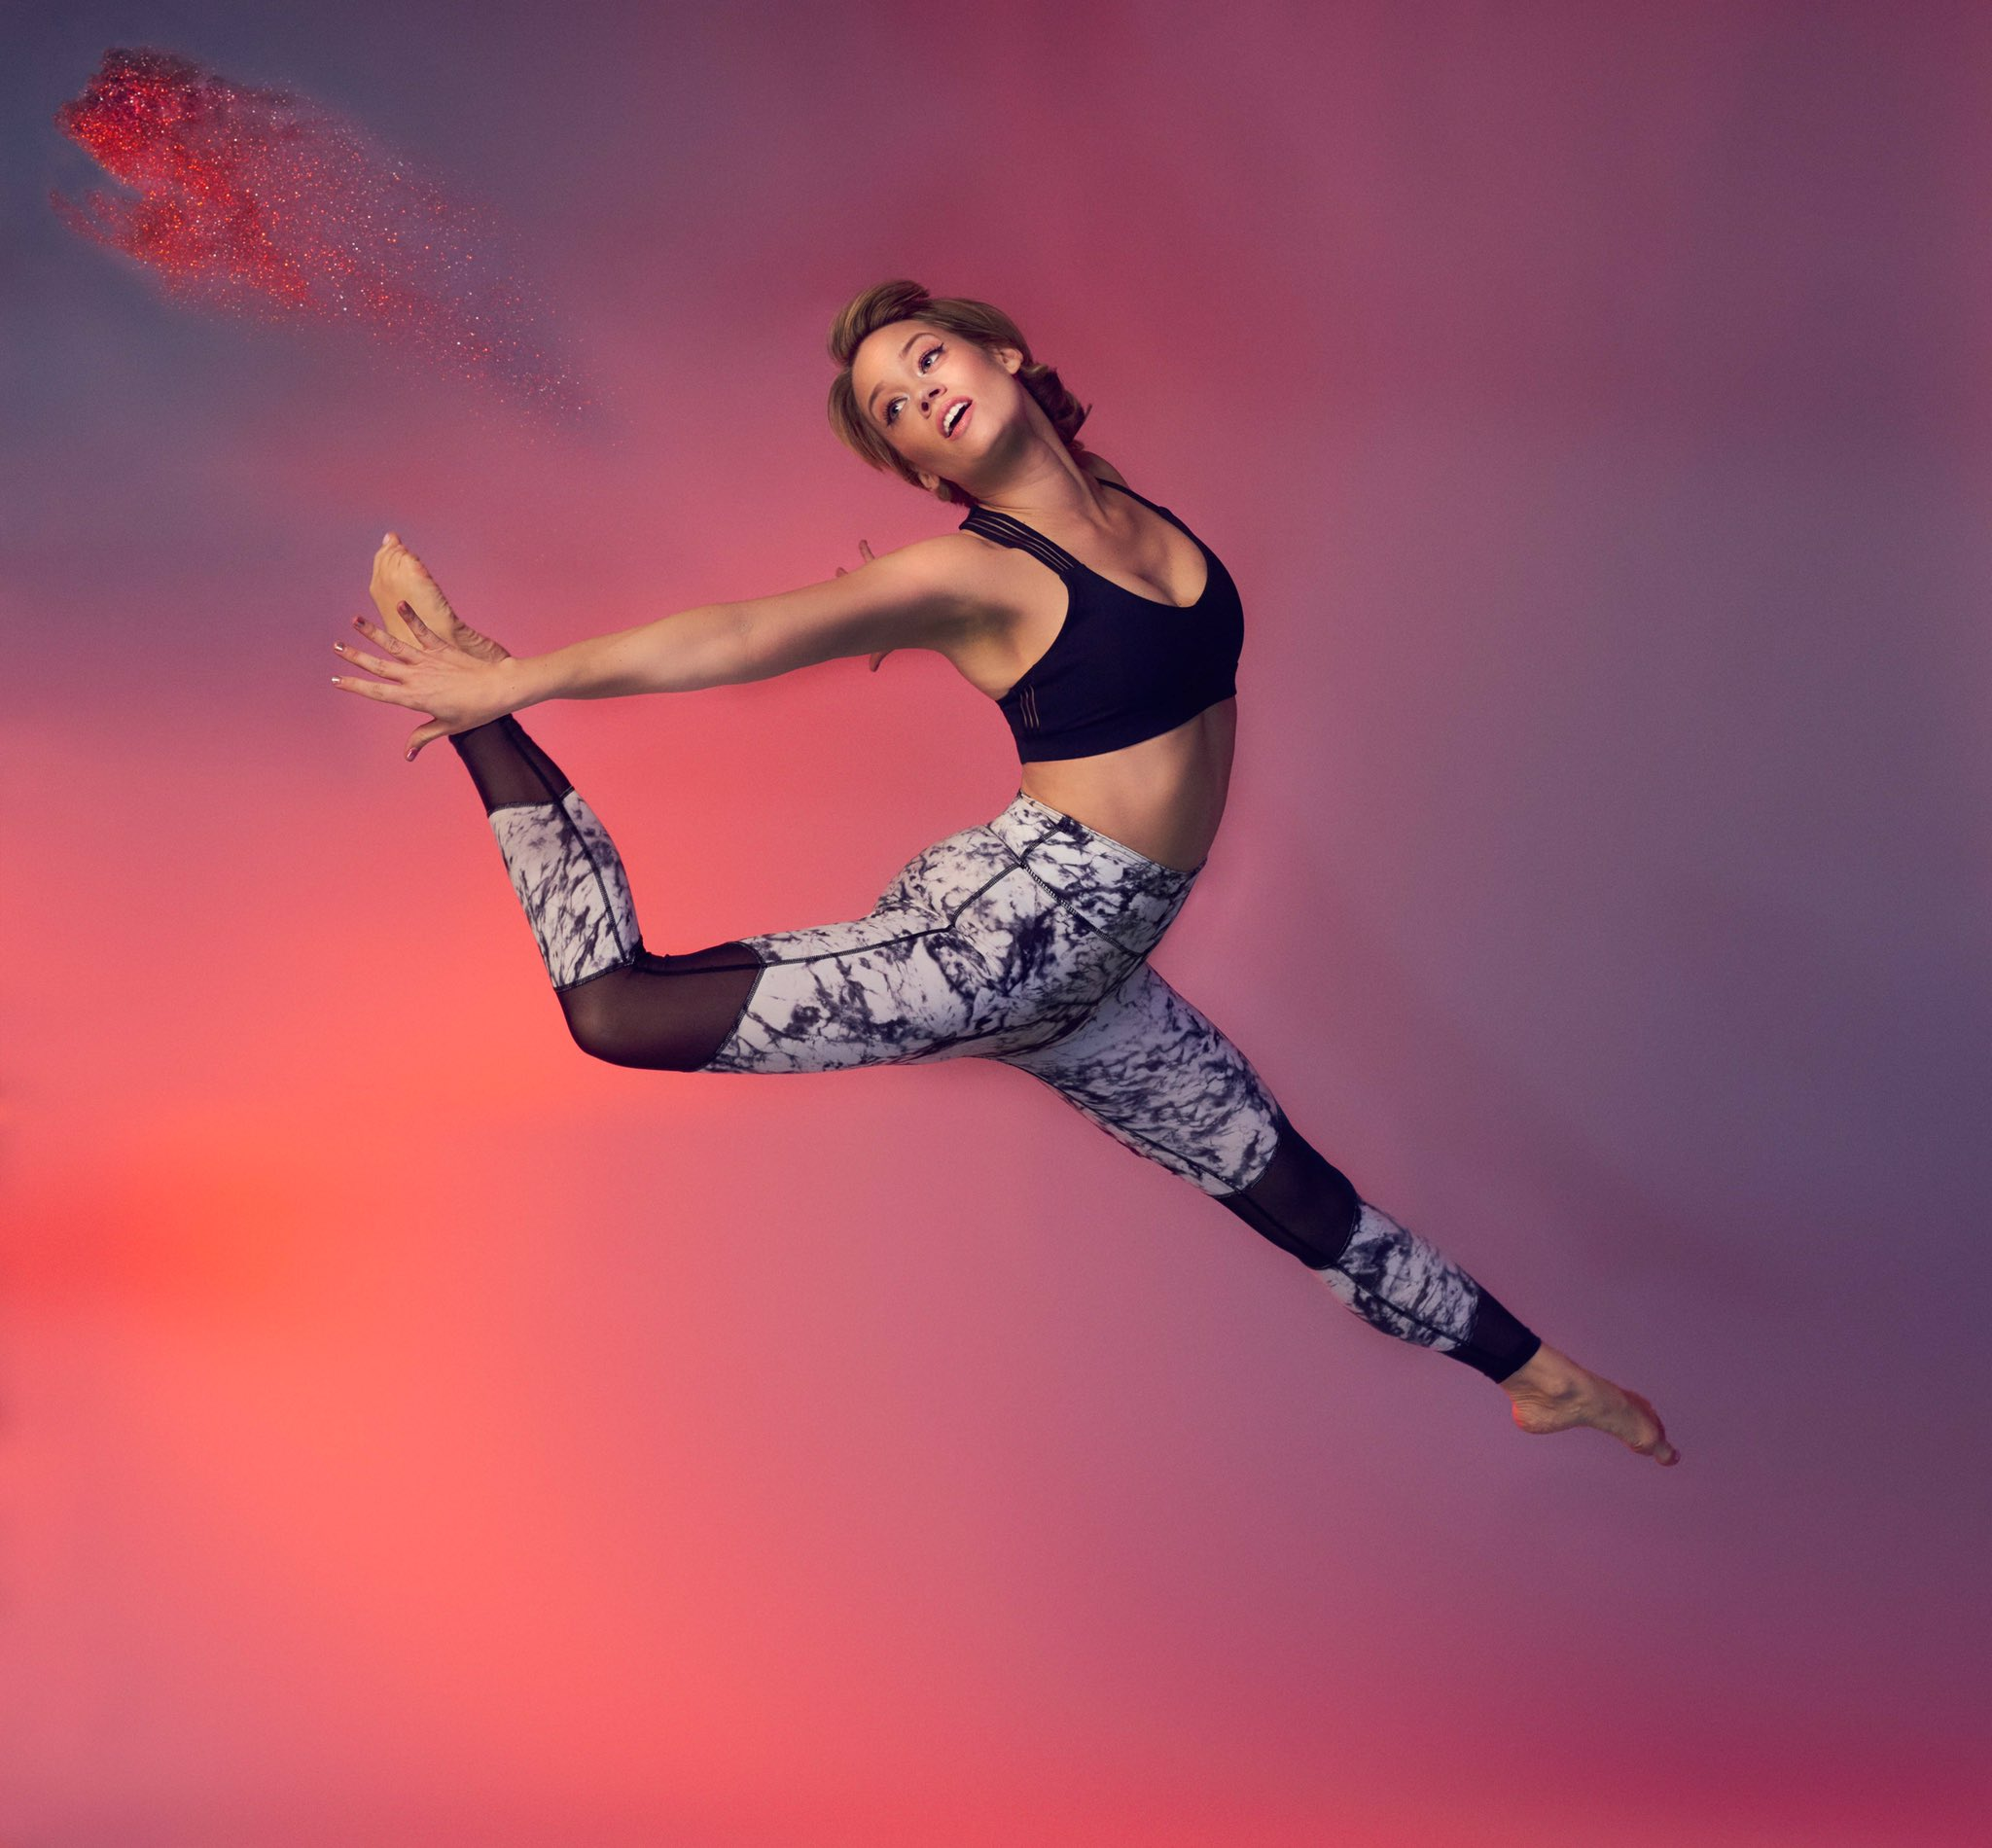 KW for @Zakti_Active is now Available online and in store at https://t.co/vr1YhB5sBL!! https://t.co/S9q4PX1LZ2